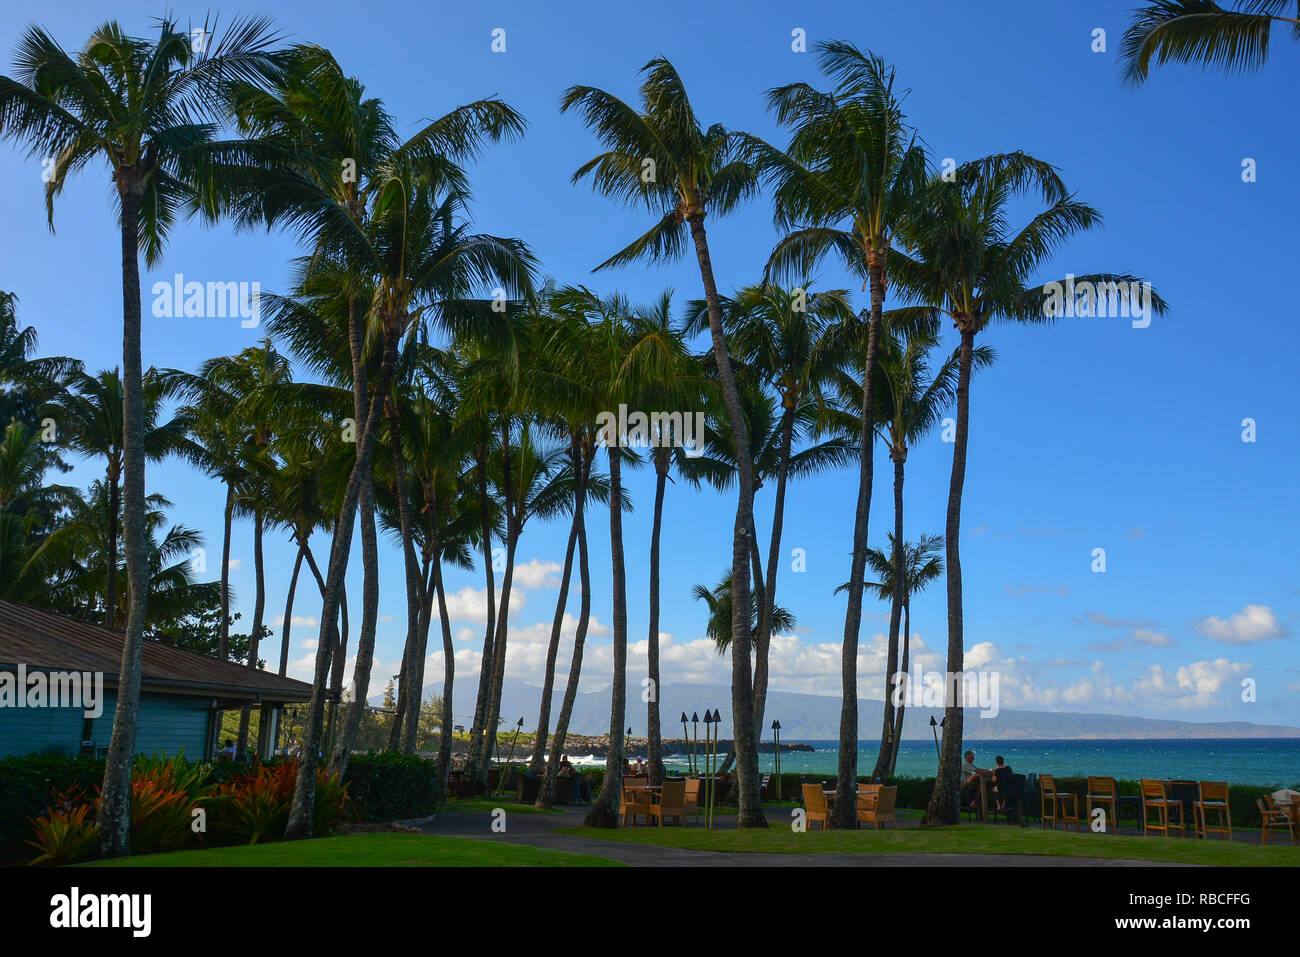 DT Fleming Beach Park, Northwest Maui, Hawaiian Islands. Beautiful white sand beach with good swimming (has lifeguard), restrooms, and picnic area - Stock Image